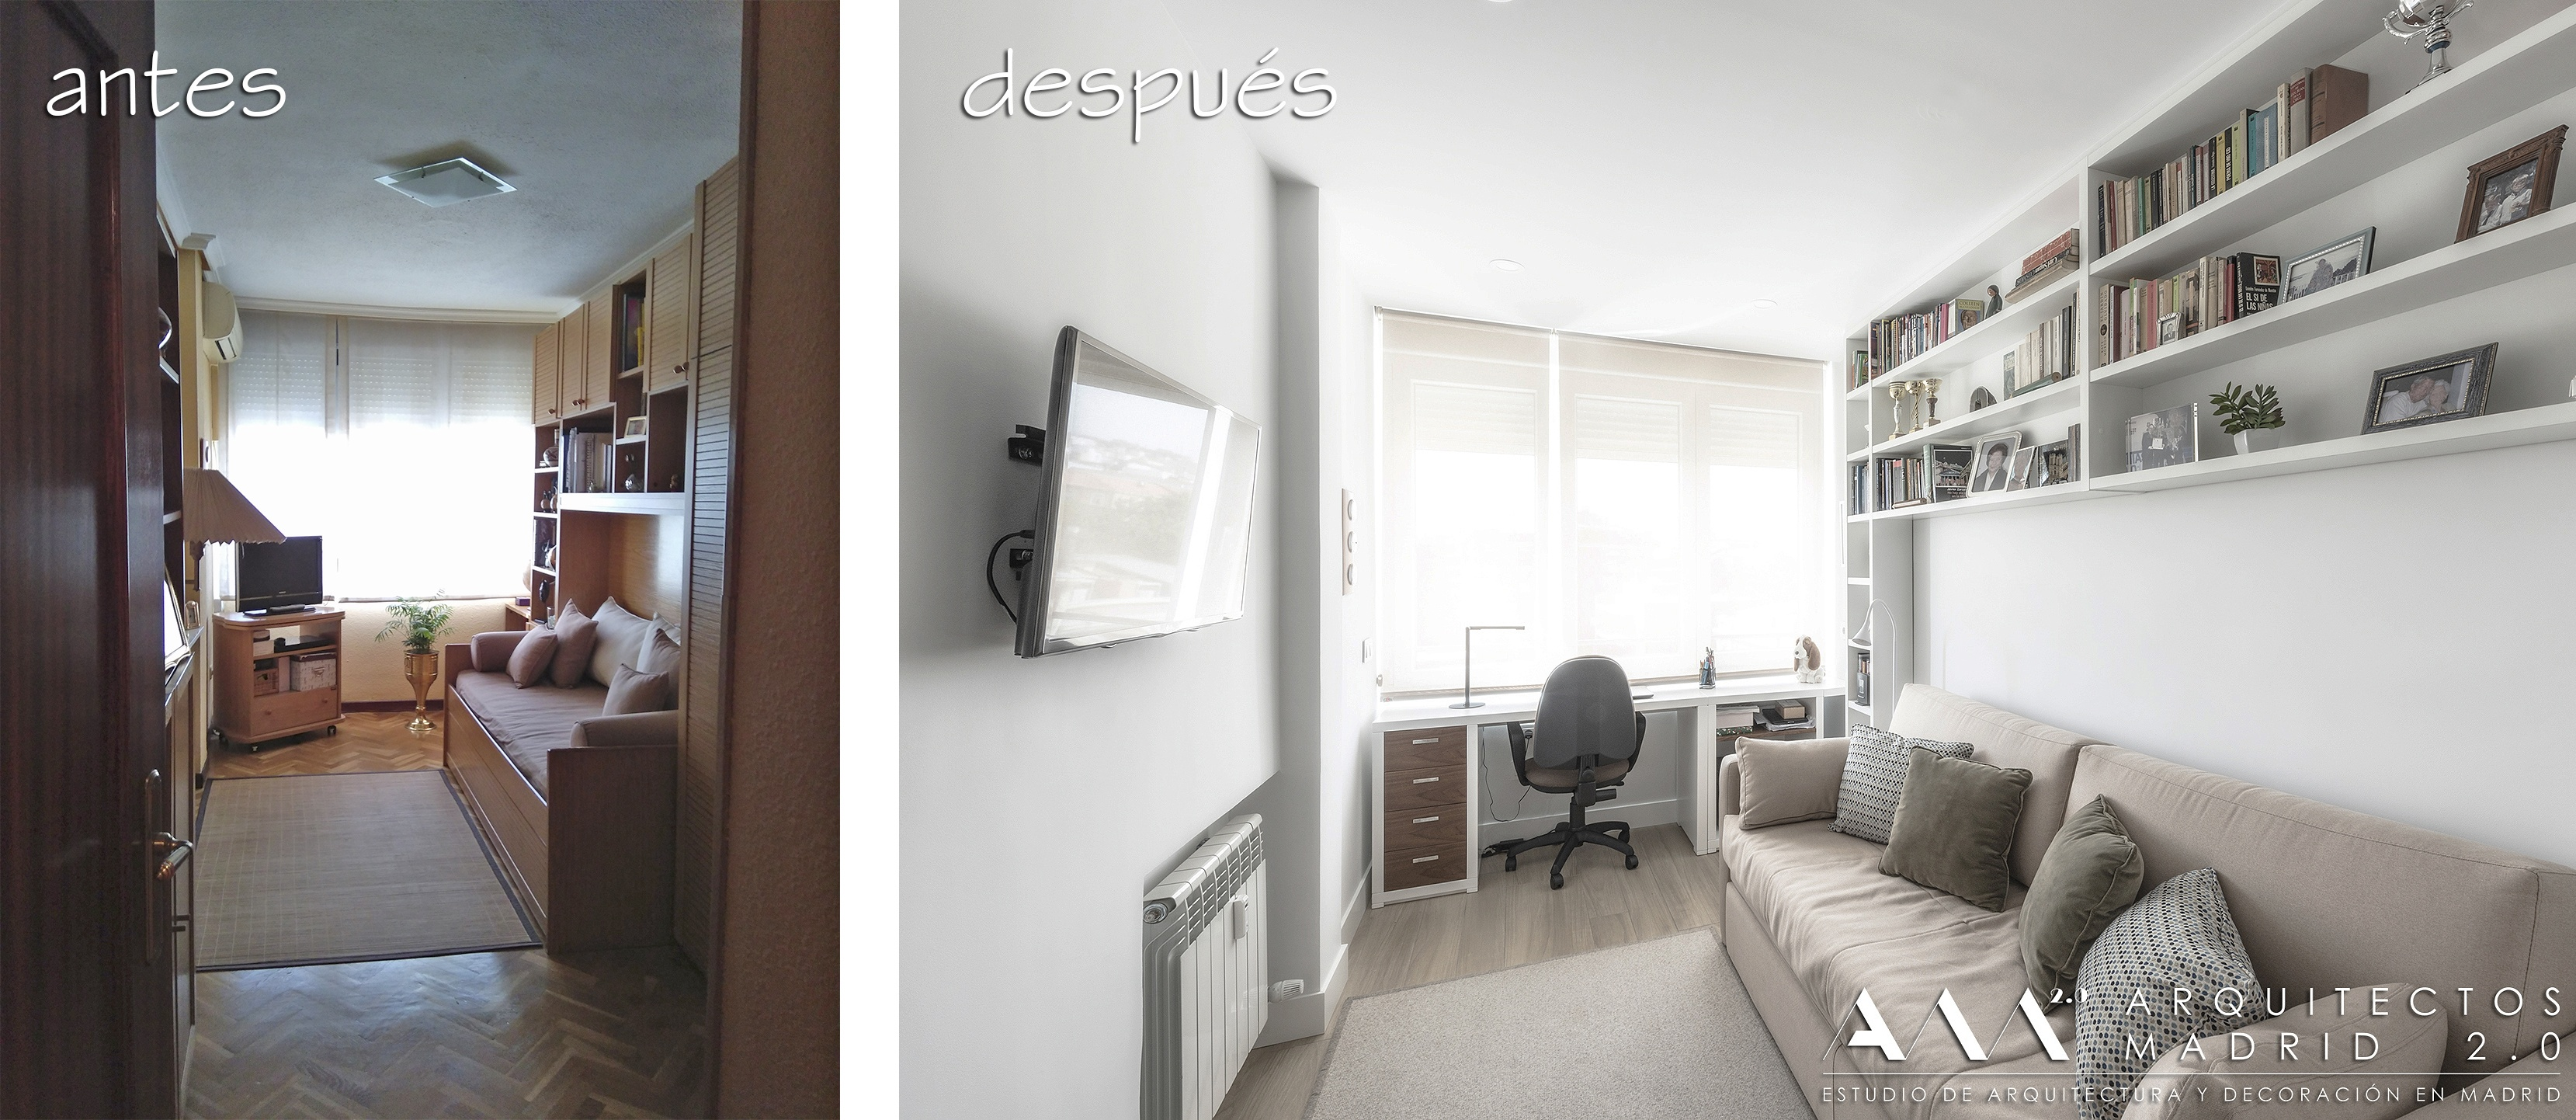 antes-despues-reforma-vivienda-ideas-decoracion-dormitorios-pequenos-despachos-small-bedrooms